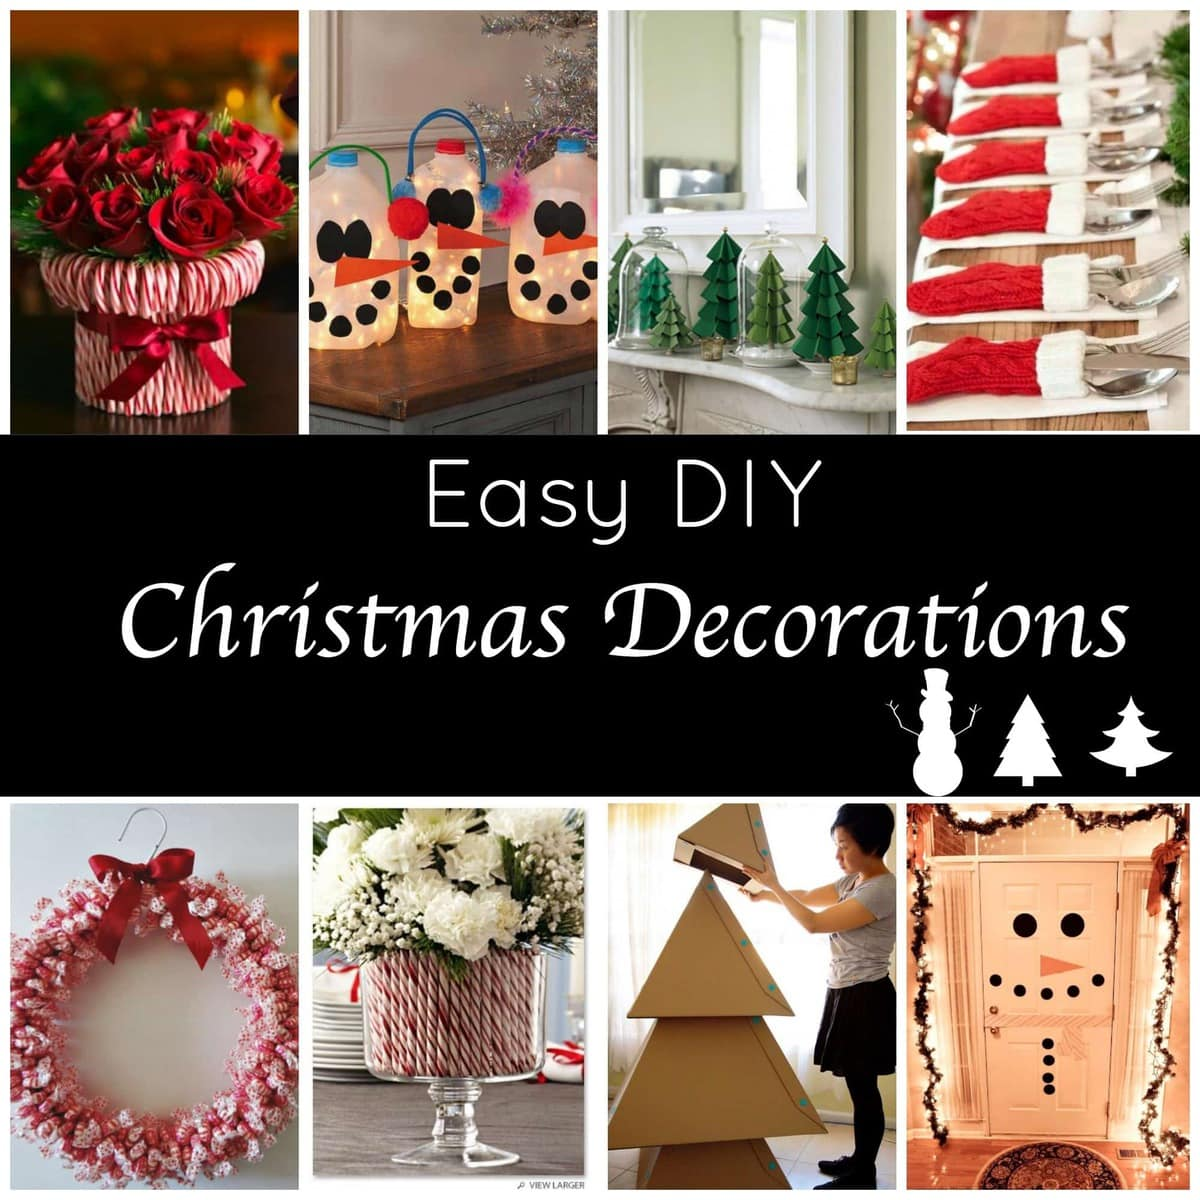 Cute and easy diy holiday decorations for a festive home for Christmas decoration ideas to make